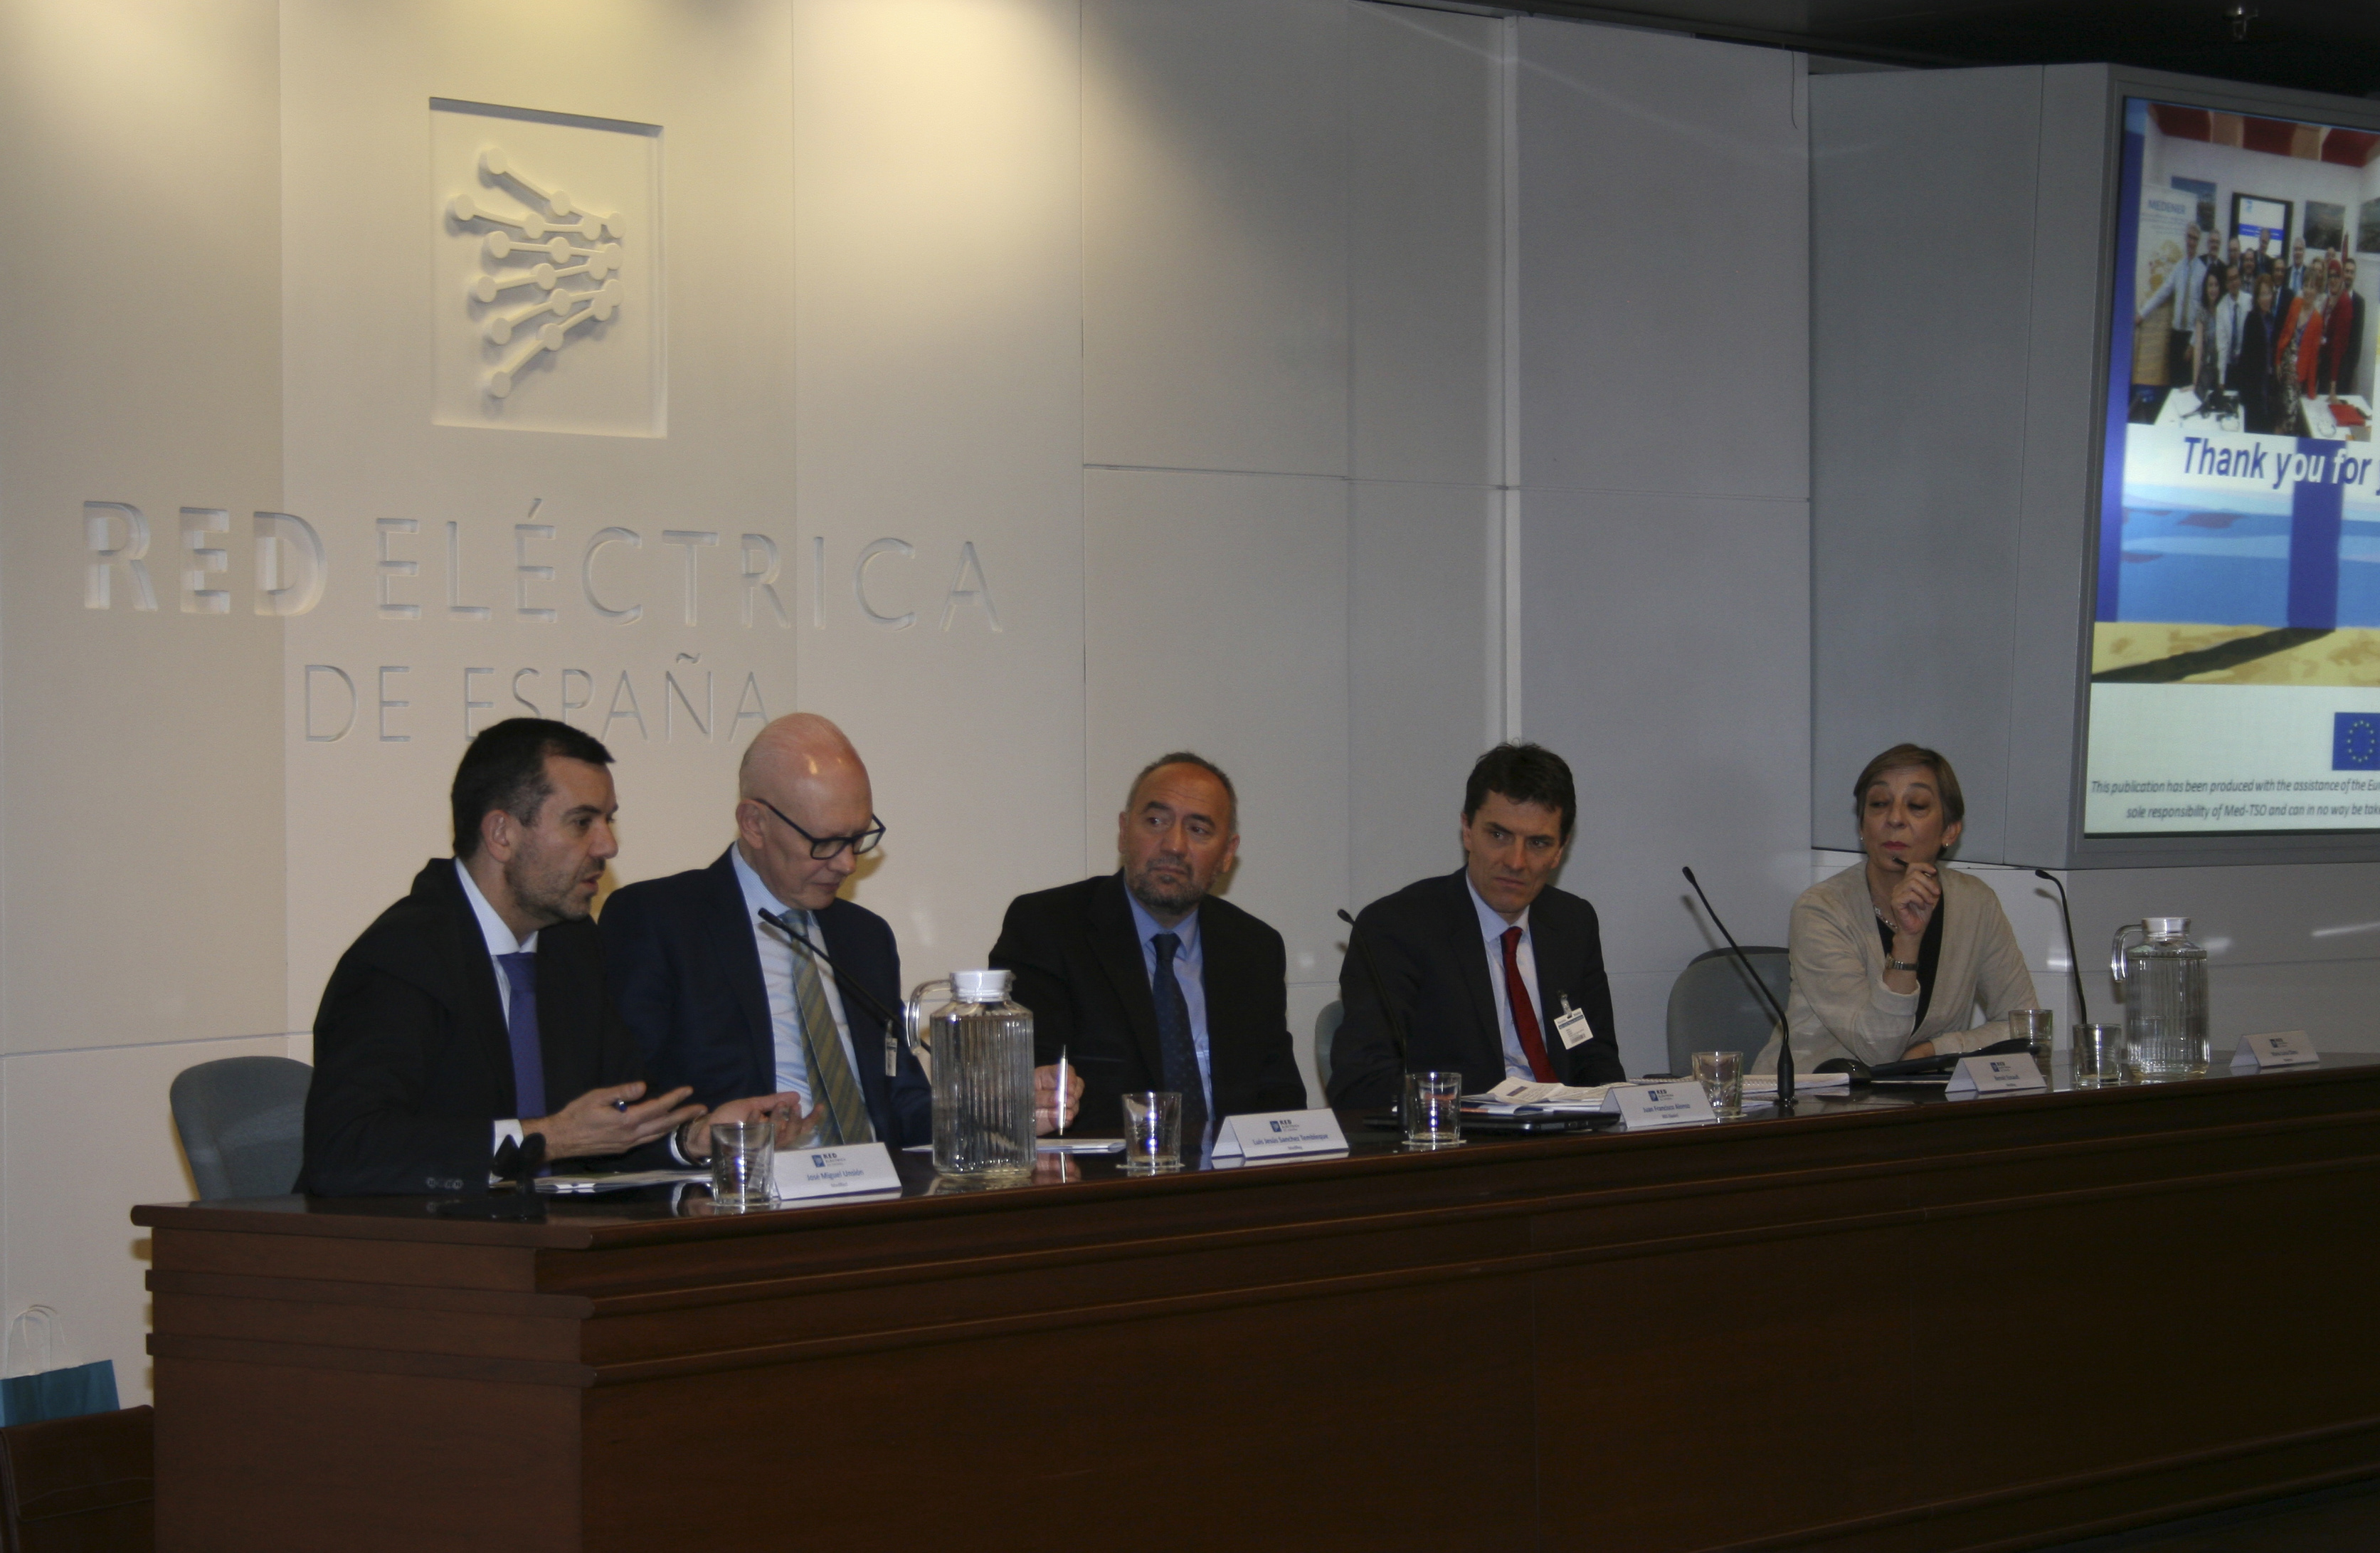 Second session: (from left to right) José Miguel Unsion (MedReg), Luis Jesús Sanchez de Tembleque (MedReg), Juan Francisco Alonso (REE), Benoit Esnault (MedReg) and Maria Luisa Olano (Medener)